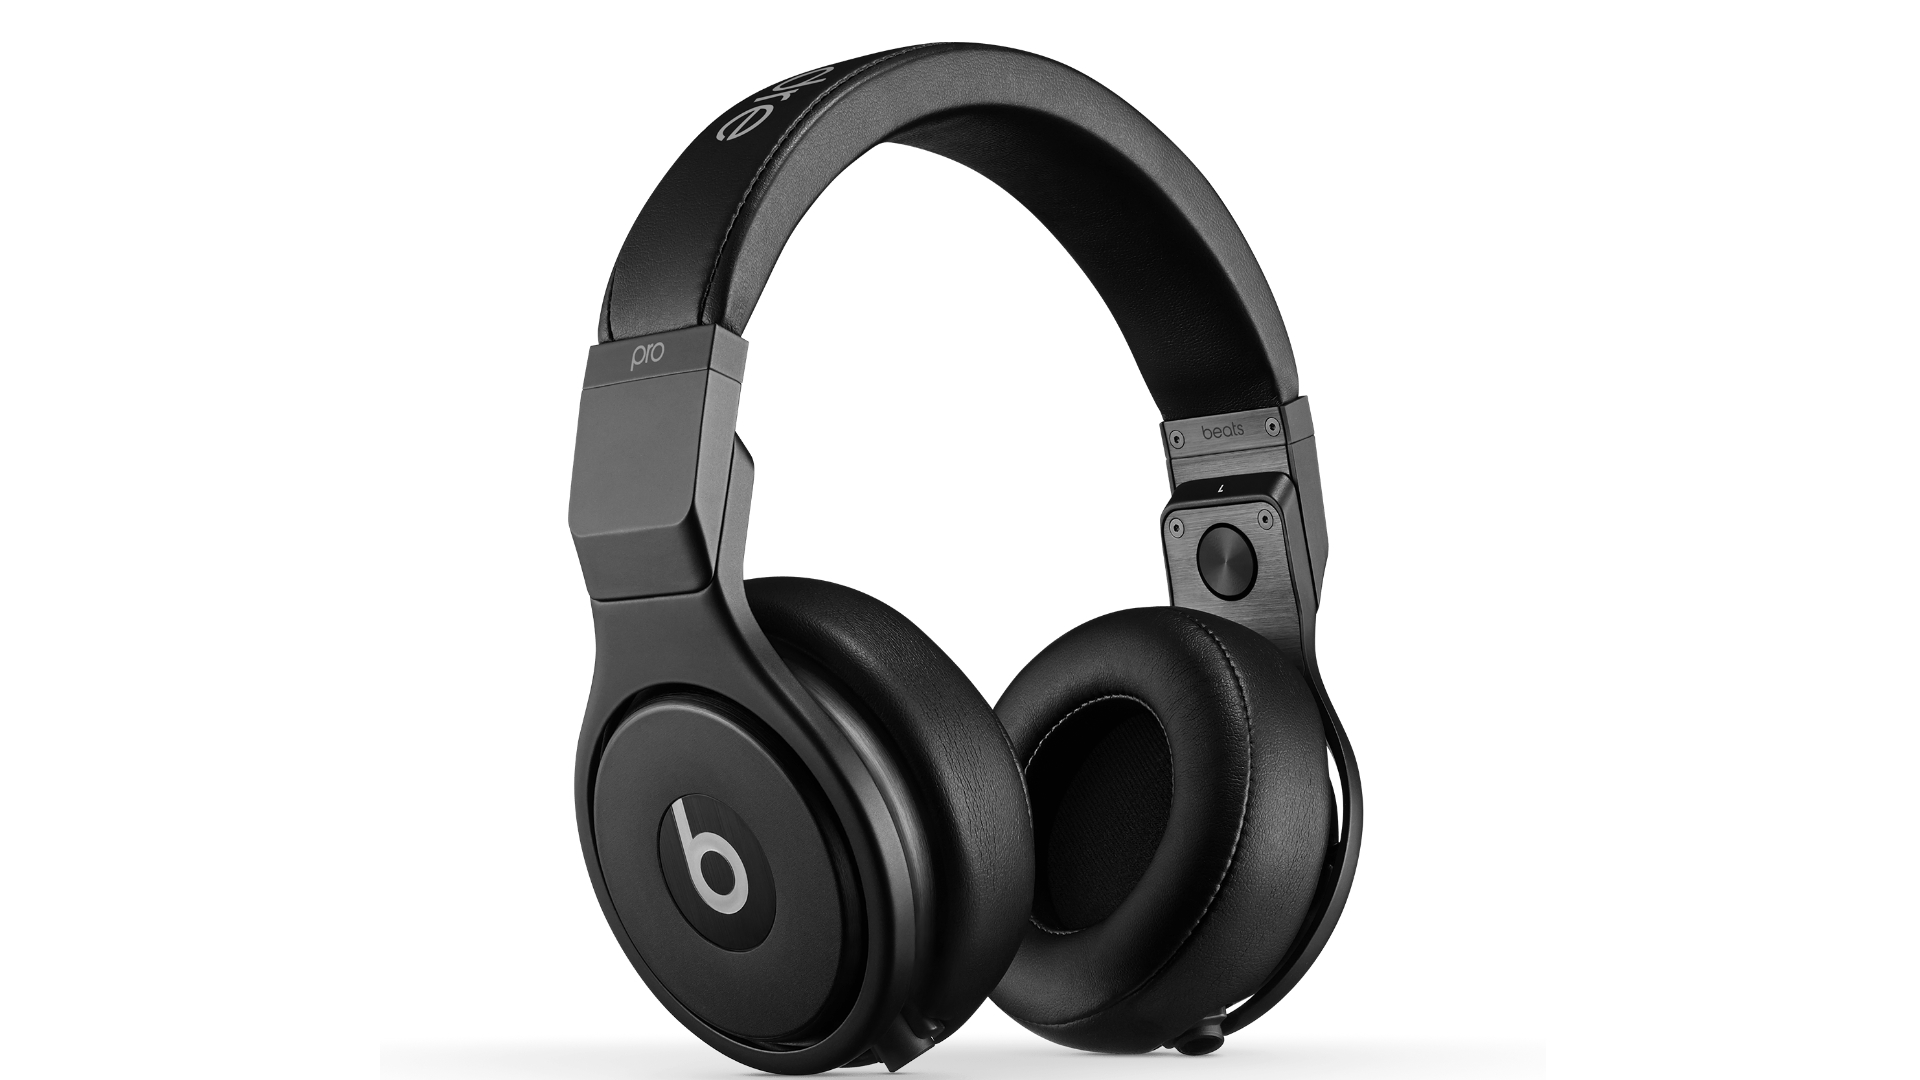 Beats Pro over-ear headphones are a couple of years old but still a great option for DJs or bass-heads